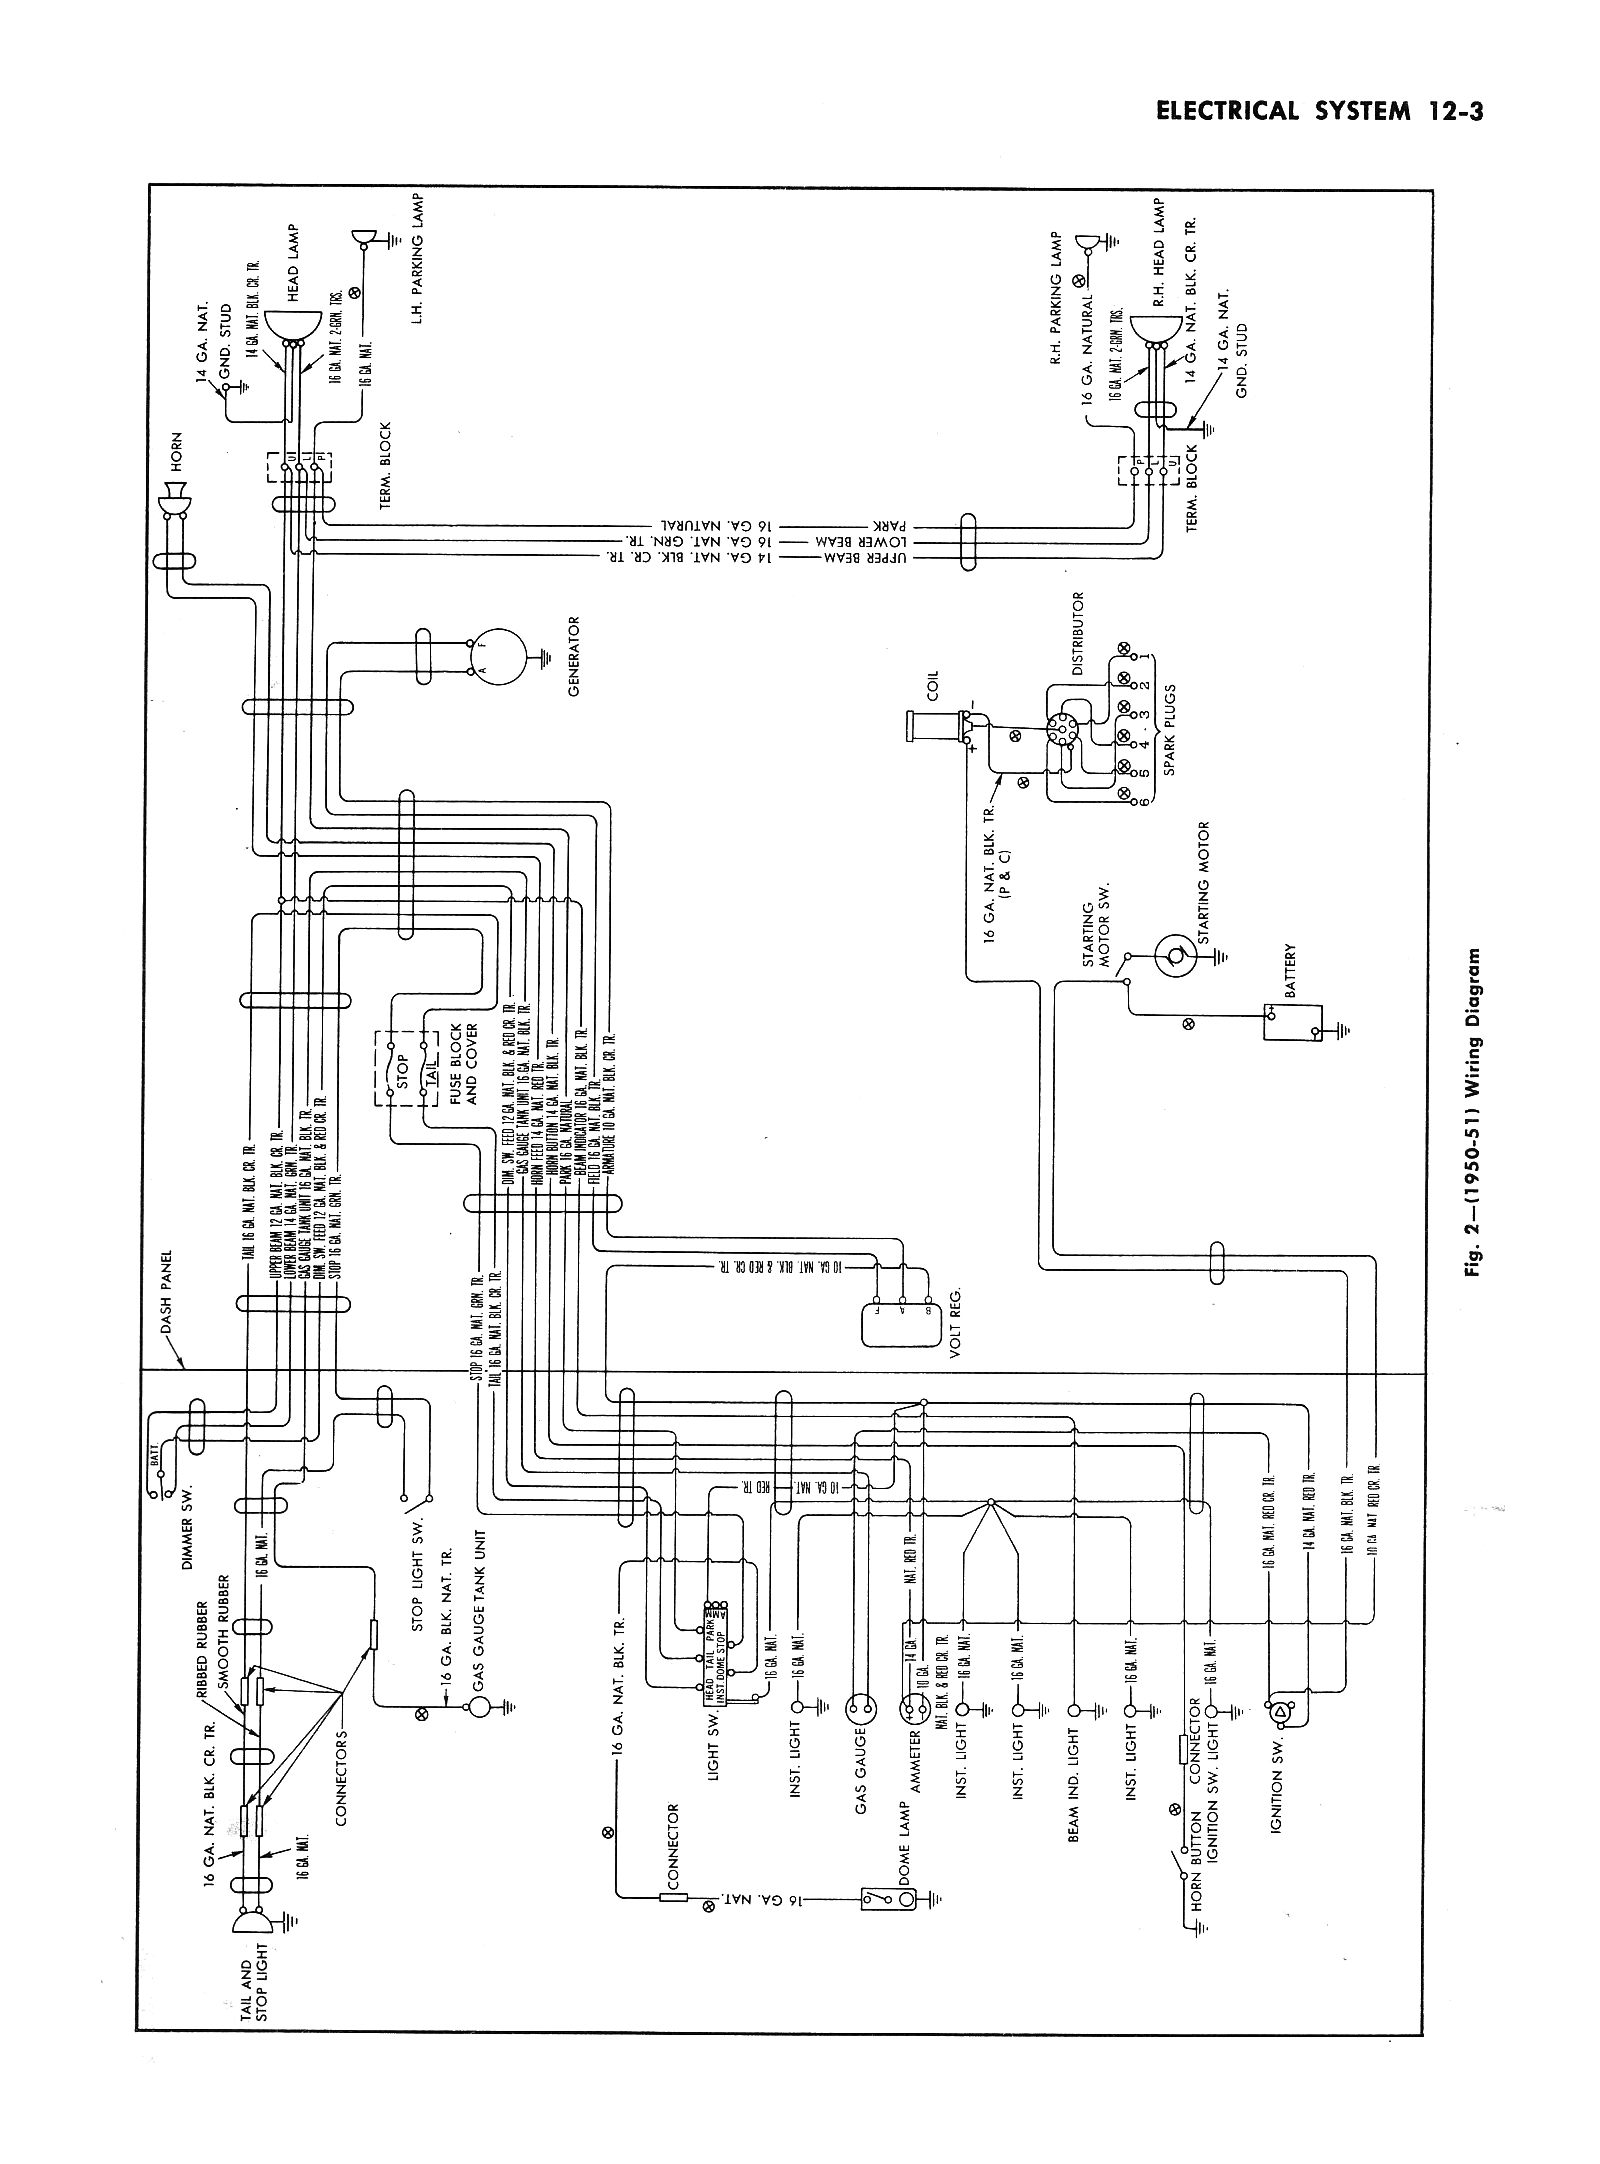 wiring diagrams for gmc trucks diagram gm truck light wiring diagrams for car or